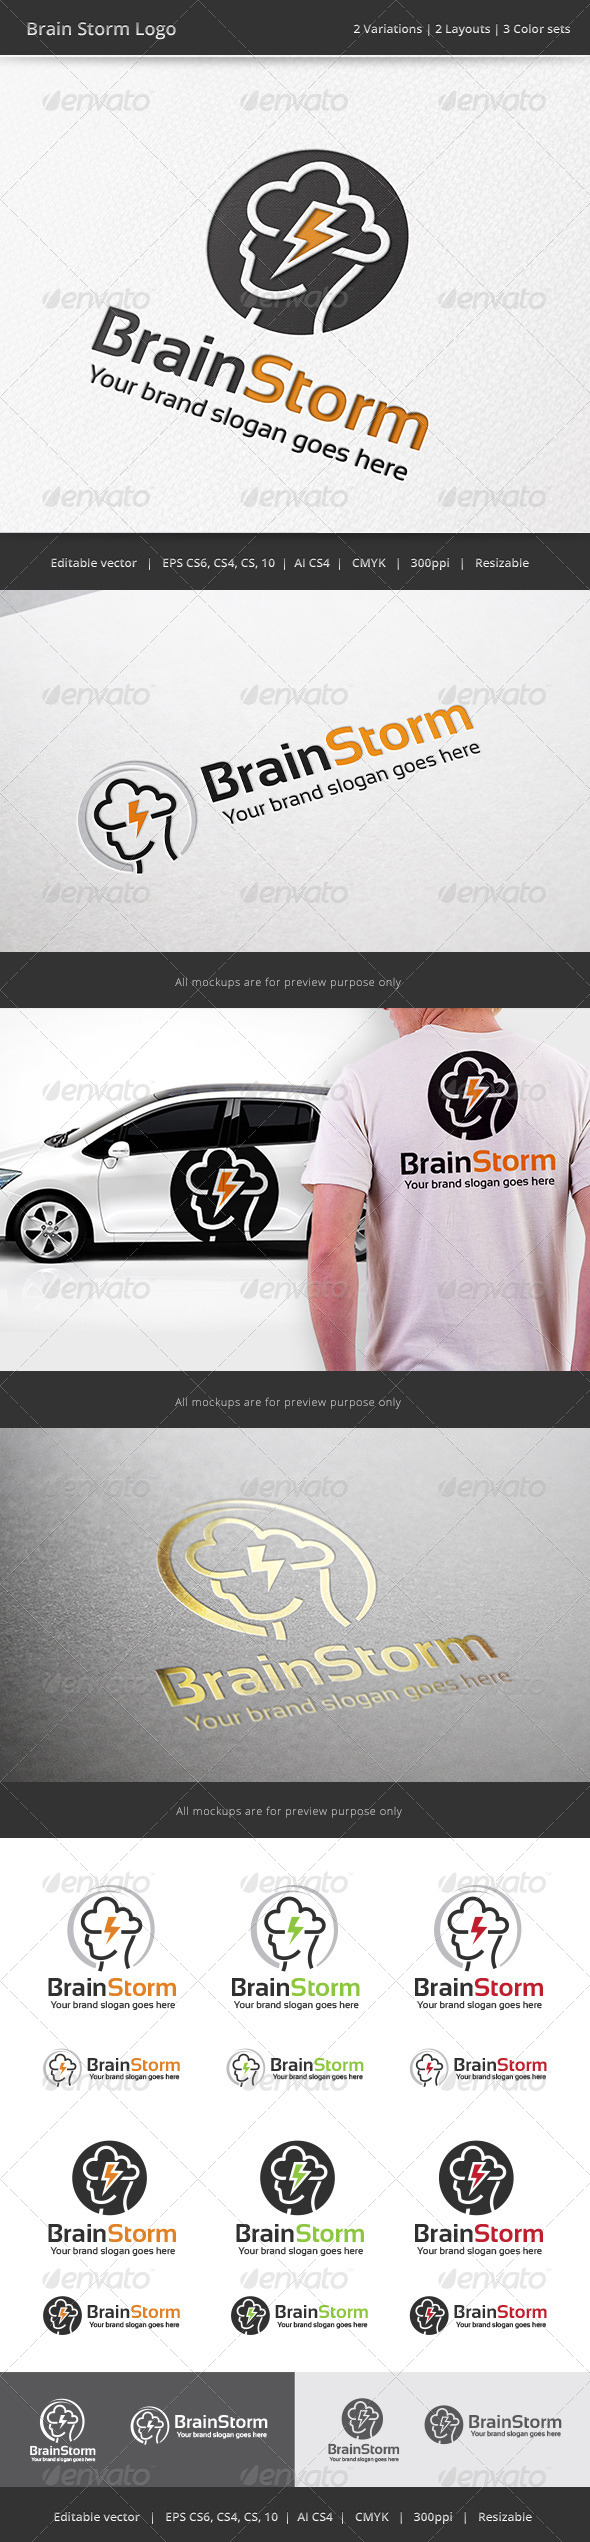 GraphicRiver Brain Storm Logo 7721660